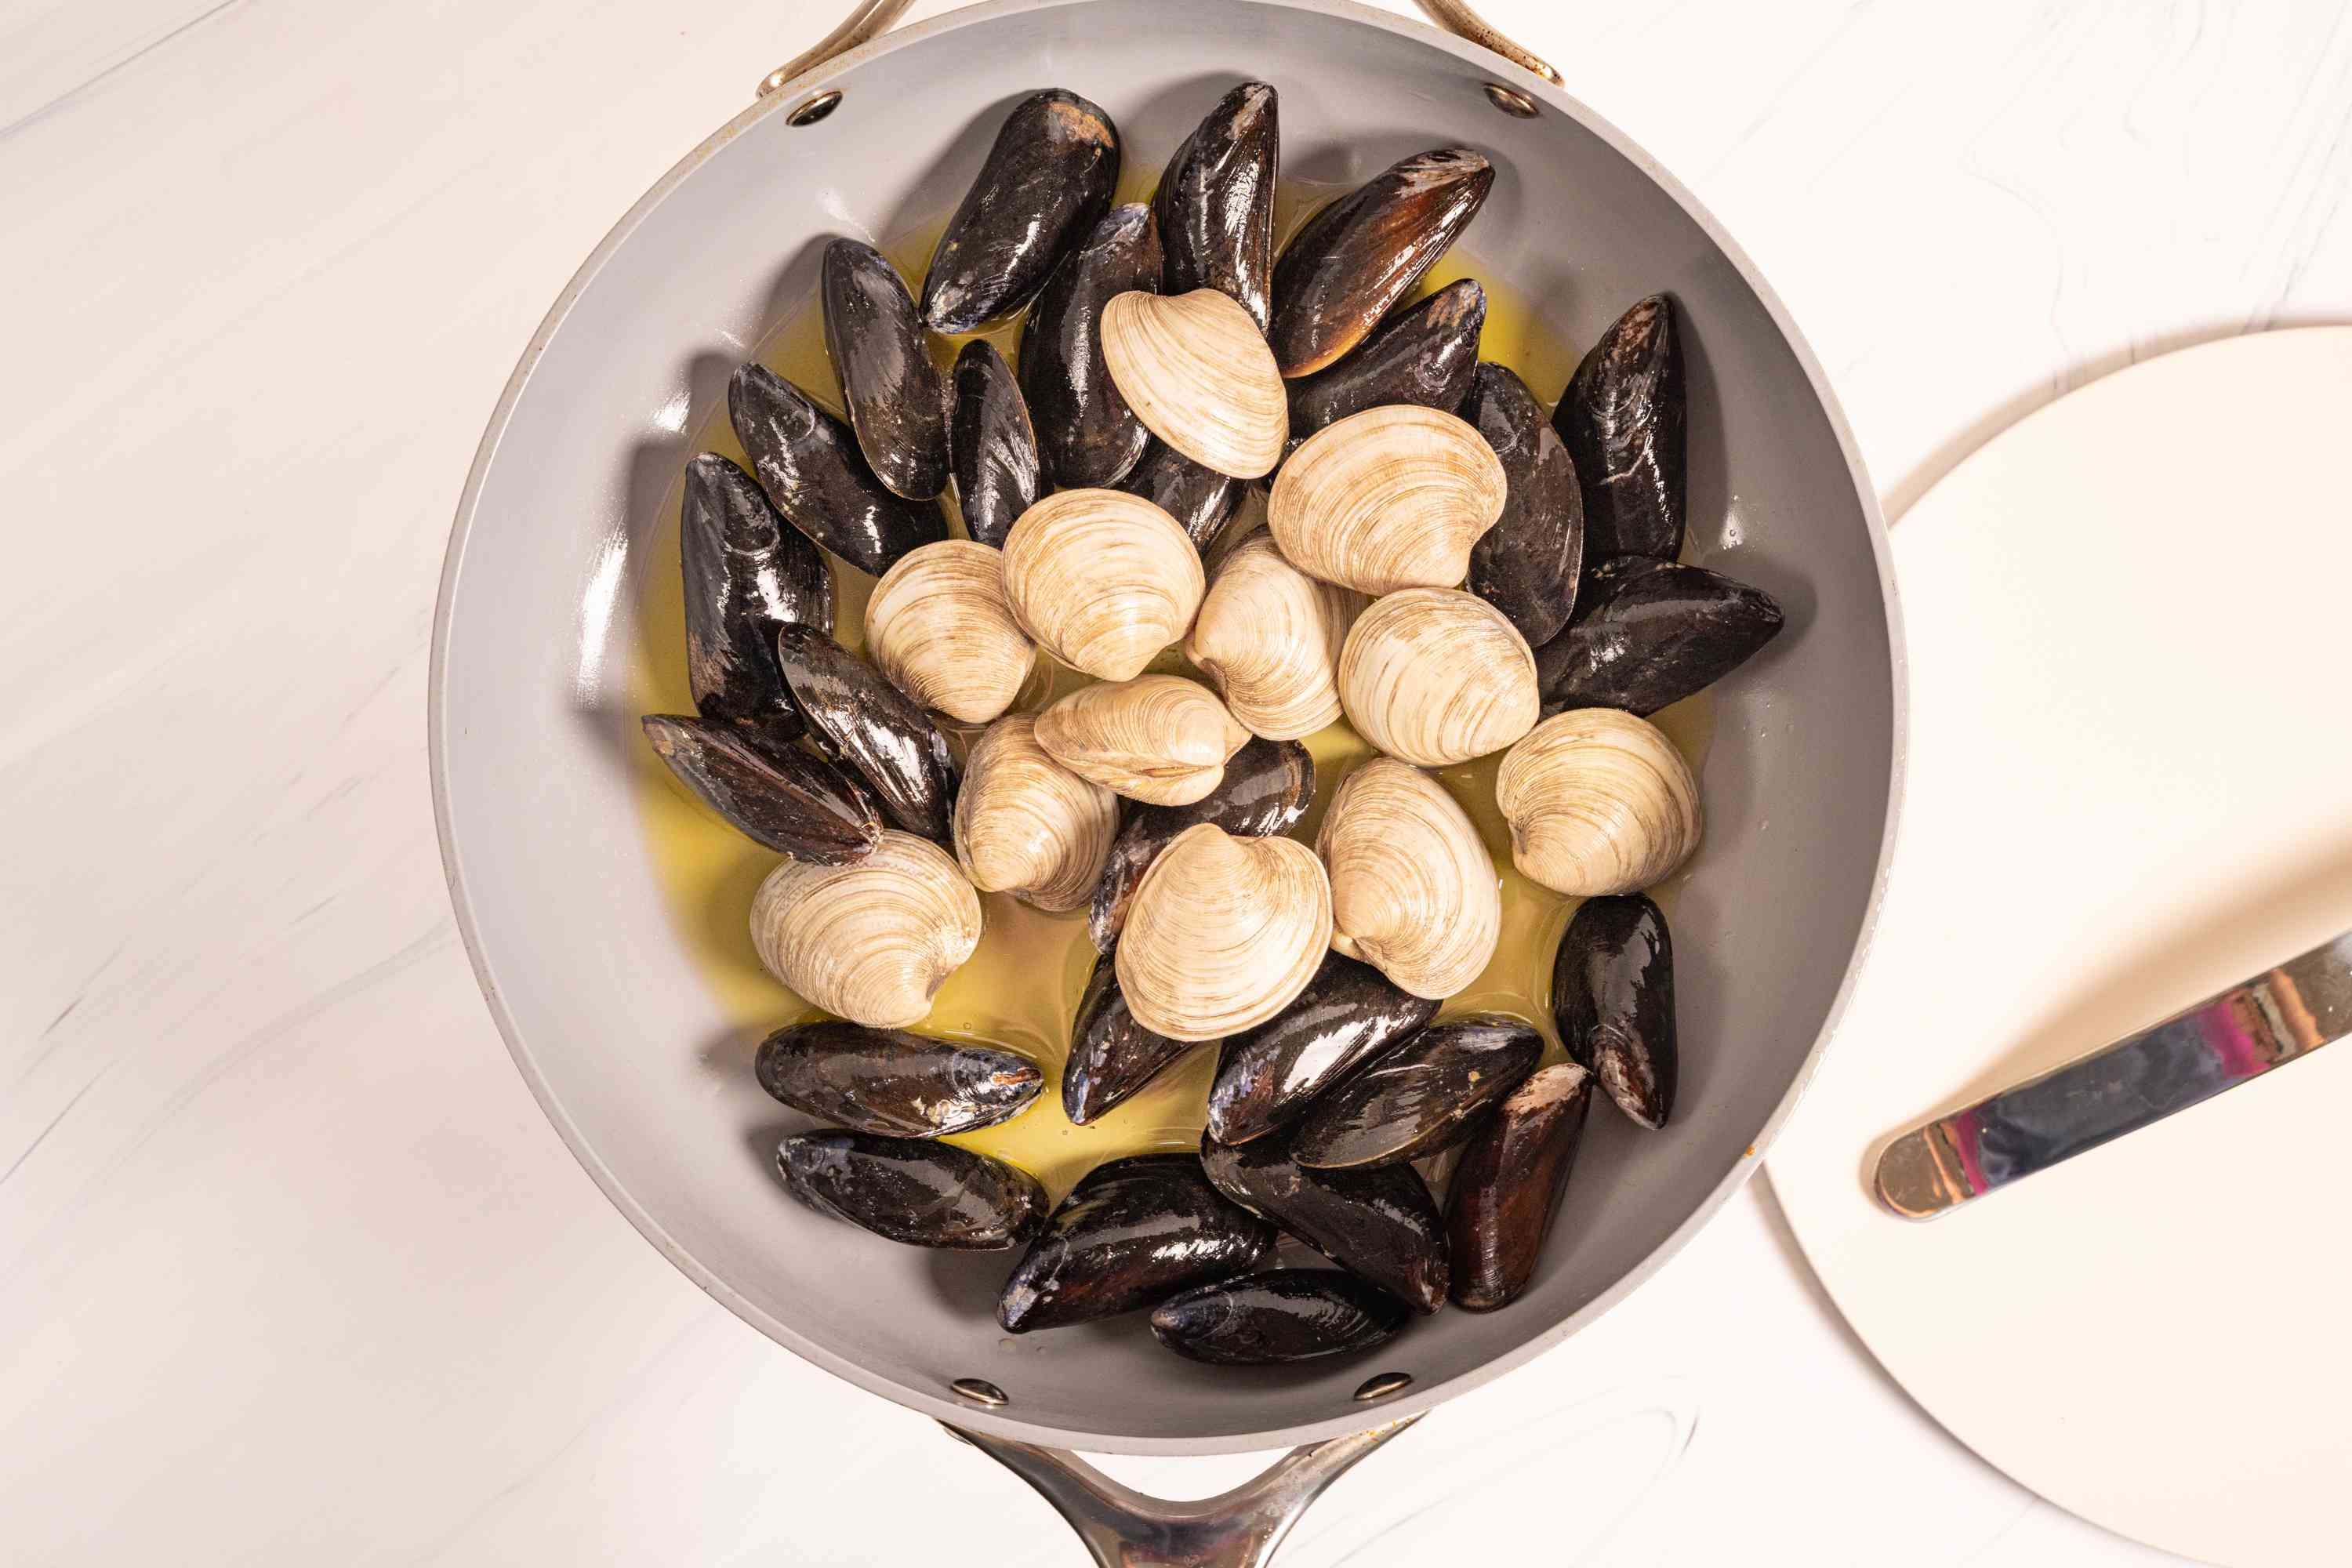 clams and muscles cooking in a skillet